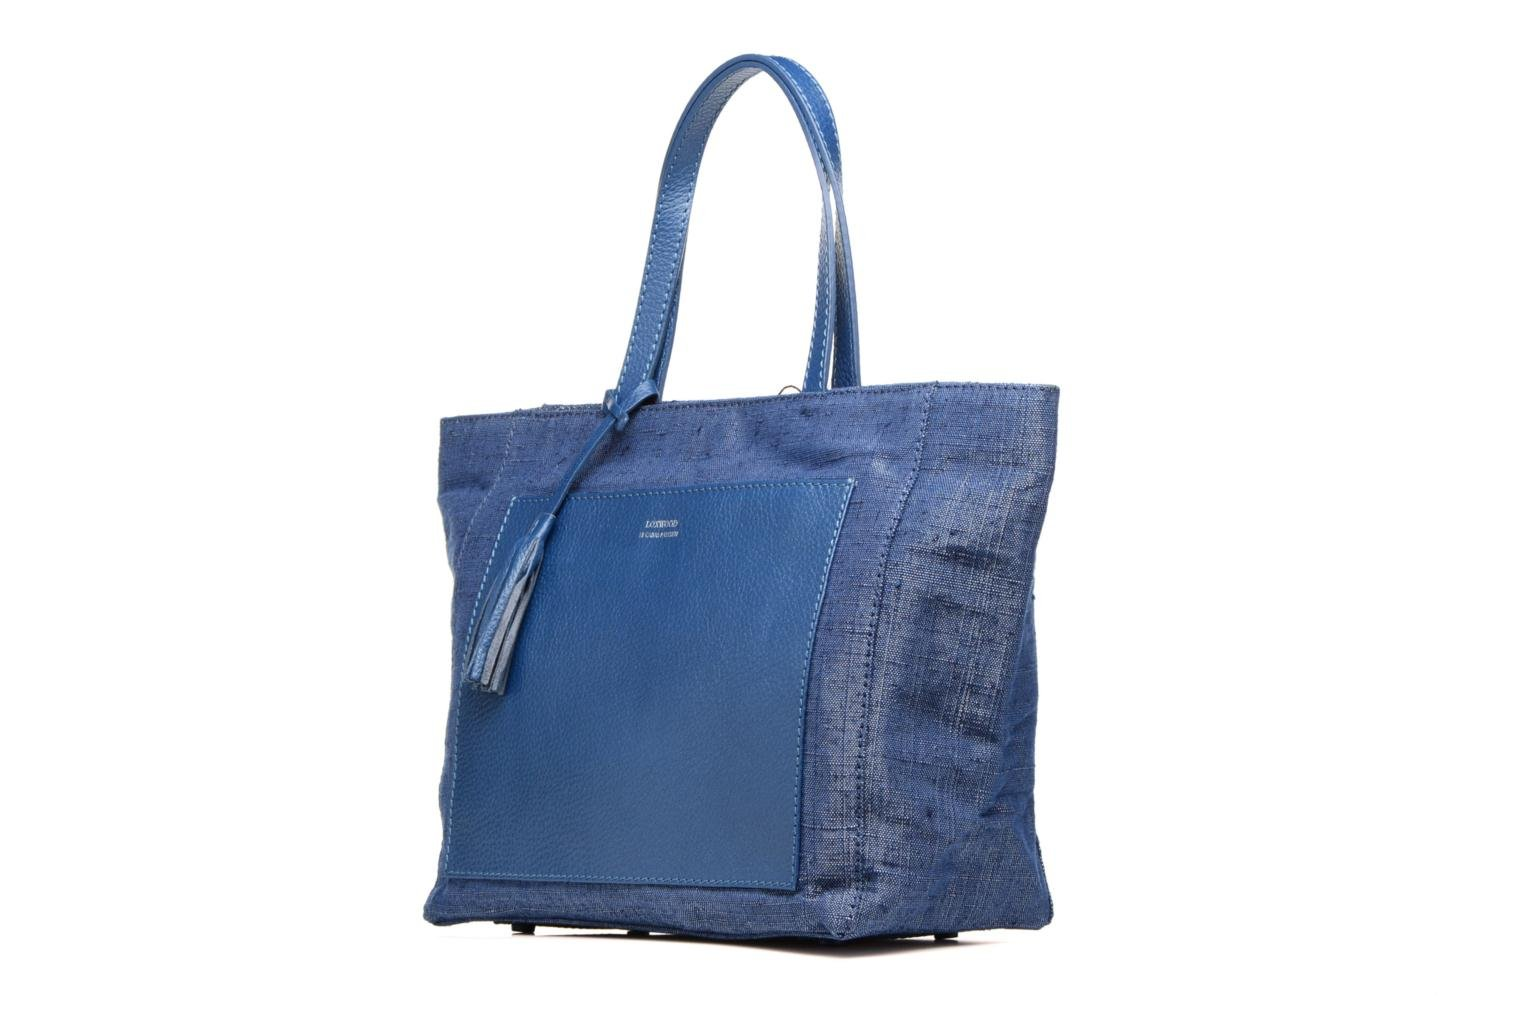 Cabas Parisien Gm Poche Metalblue